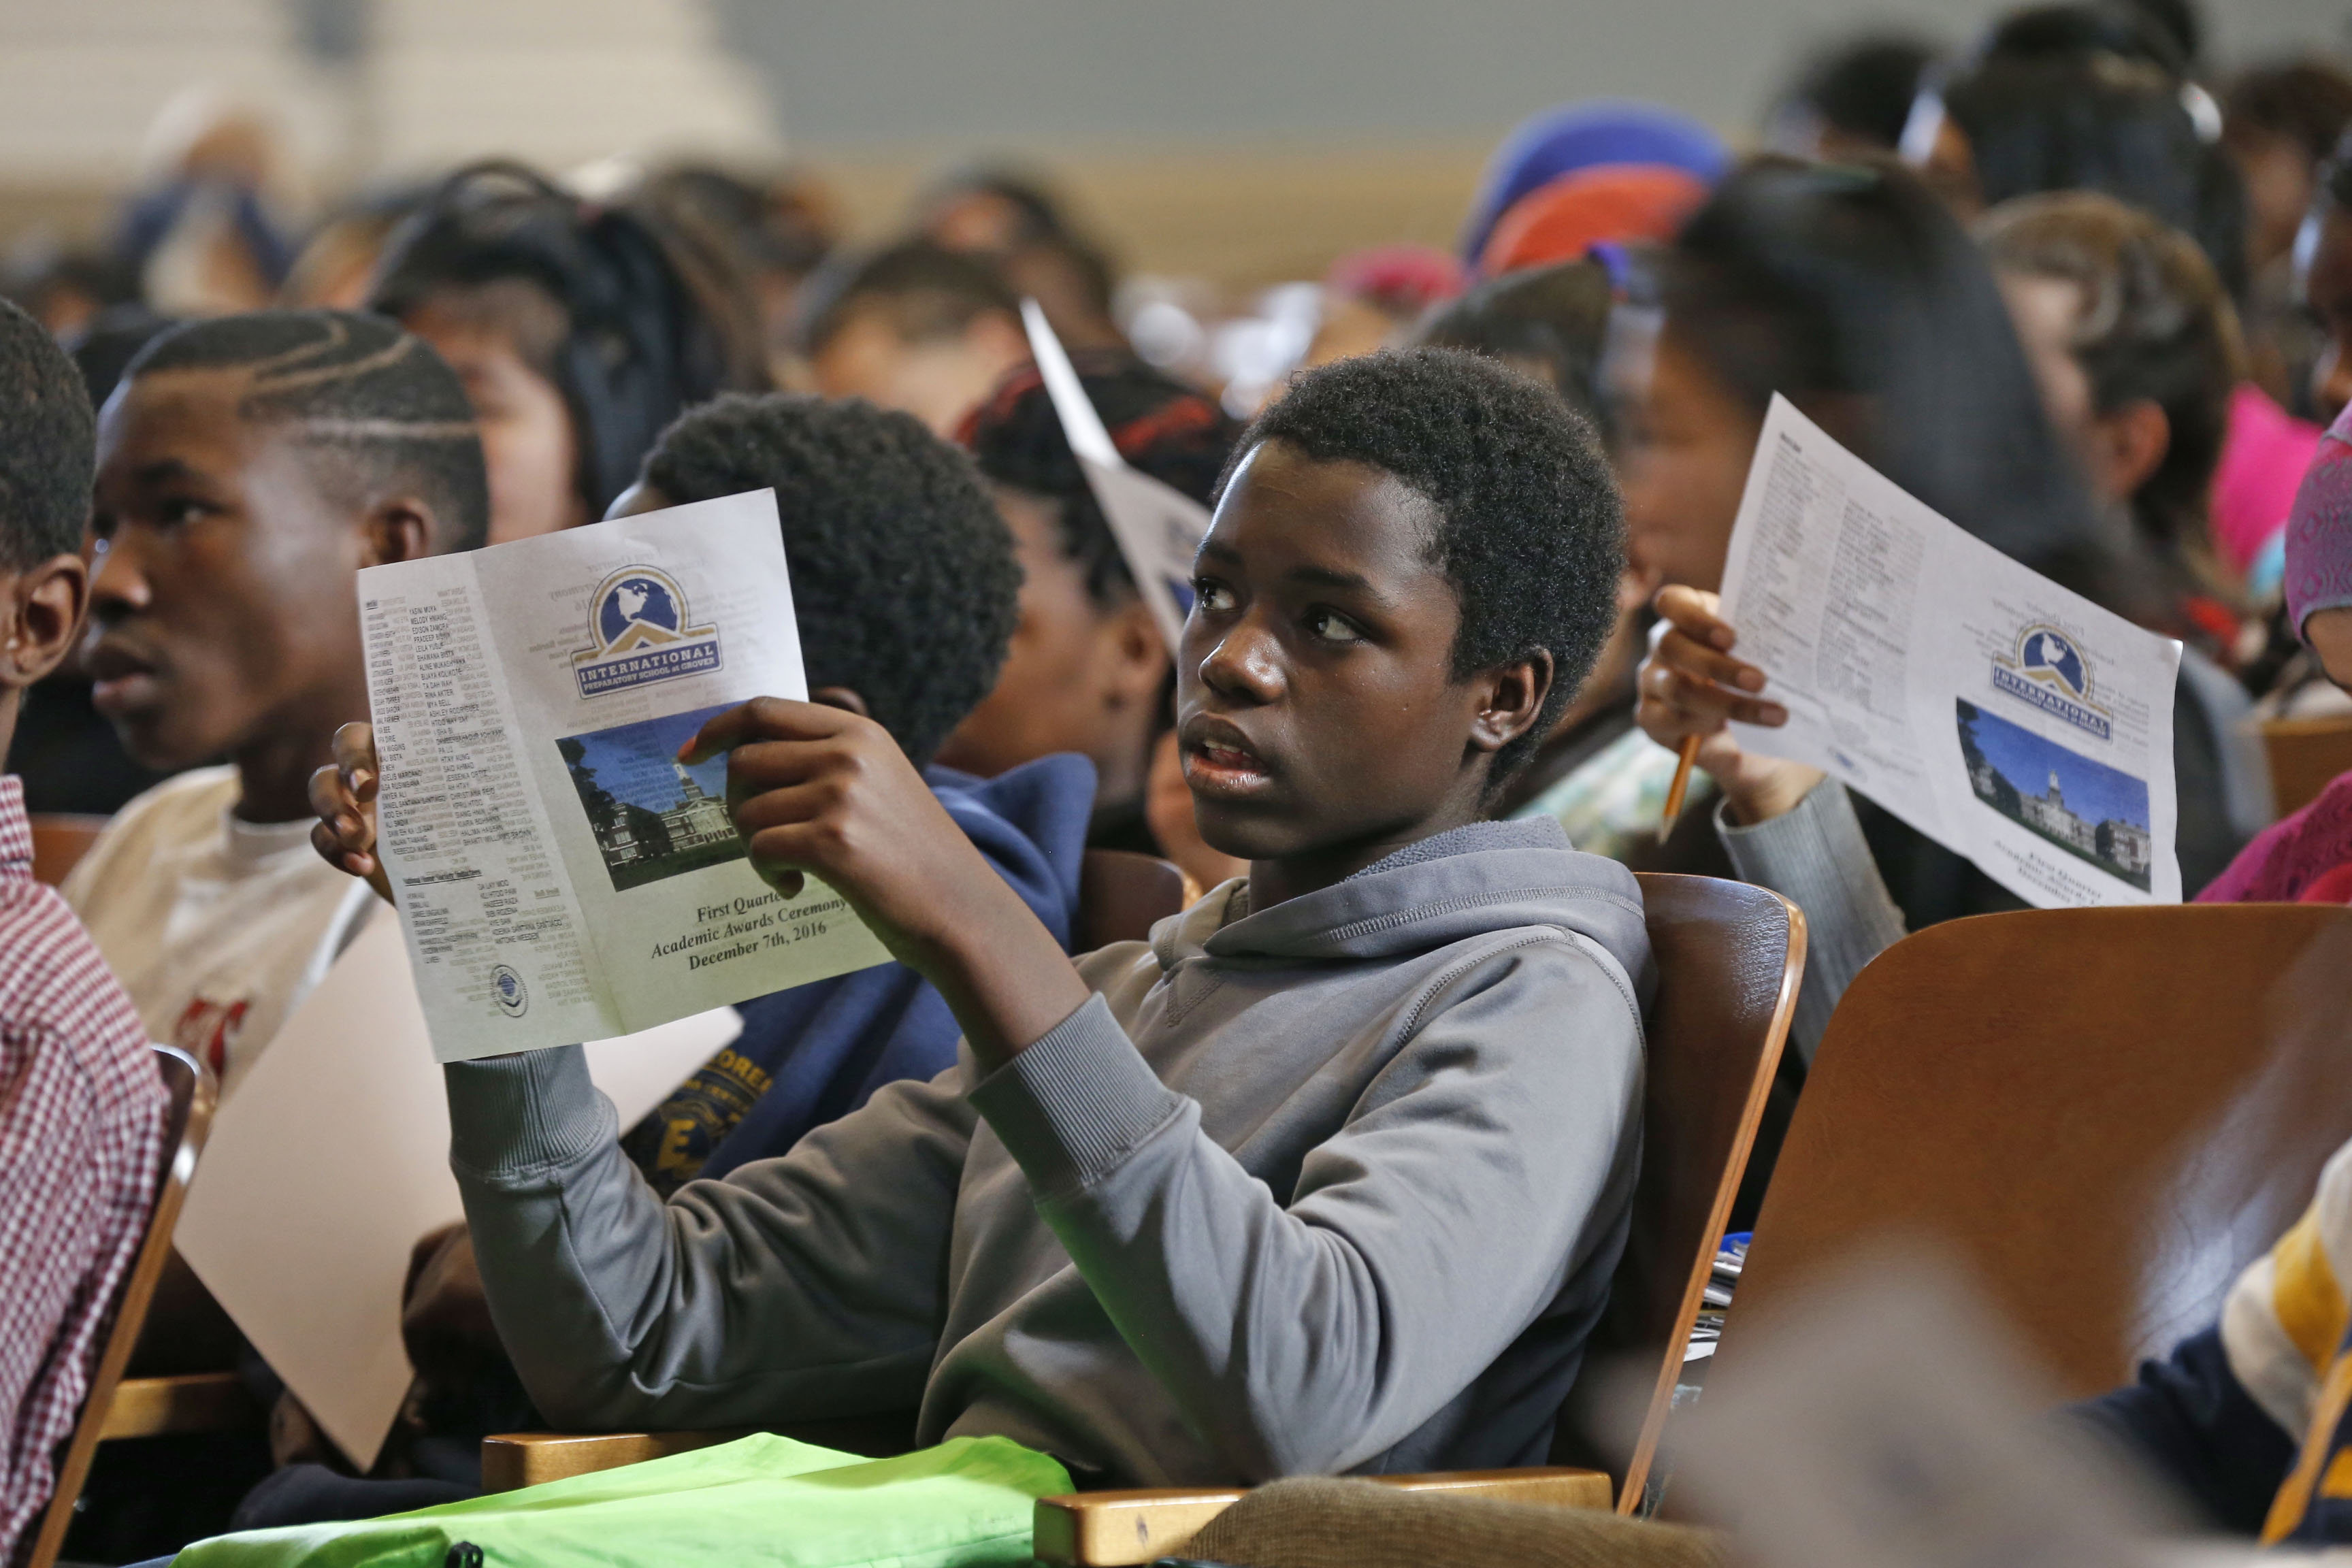 I-Prep freshman Vincent Munyaneza, 14, sits at an assembly waiting for his name to be called during a merit and honor society celebration in the school's auditorium  on Wednesday, Dec. 7, 2016.  (Robert Kirkham/Buffalo News)